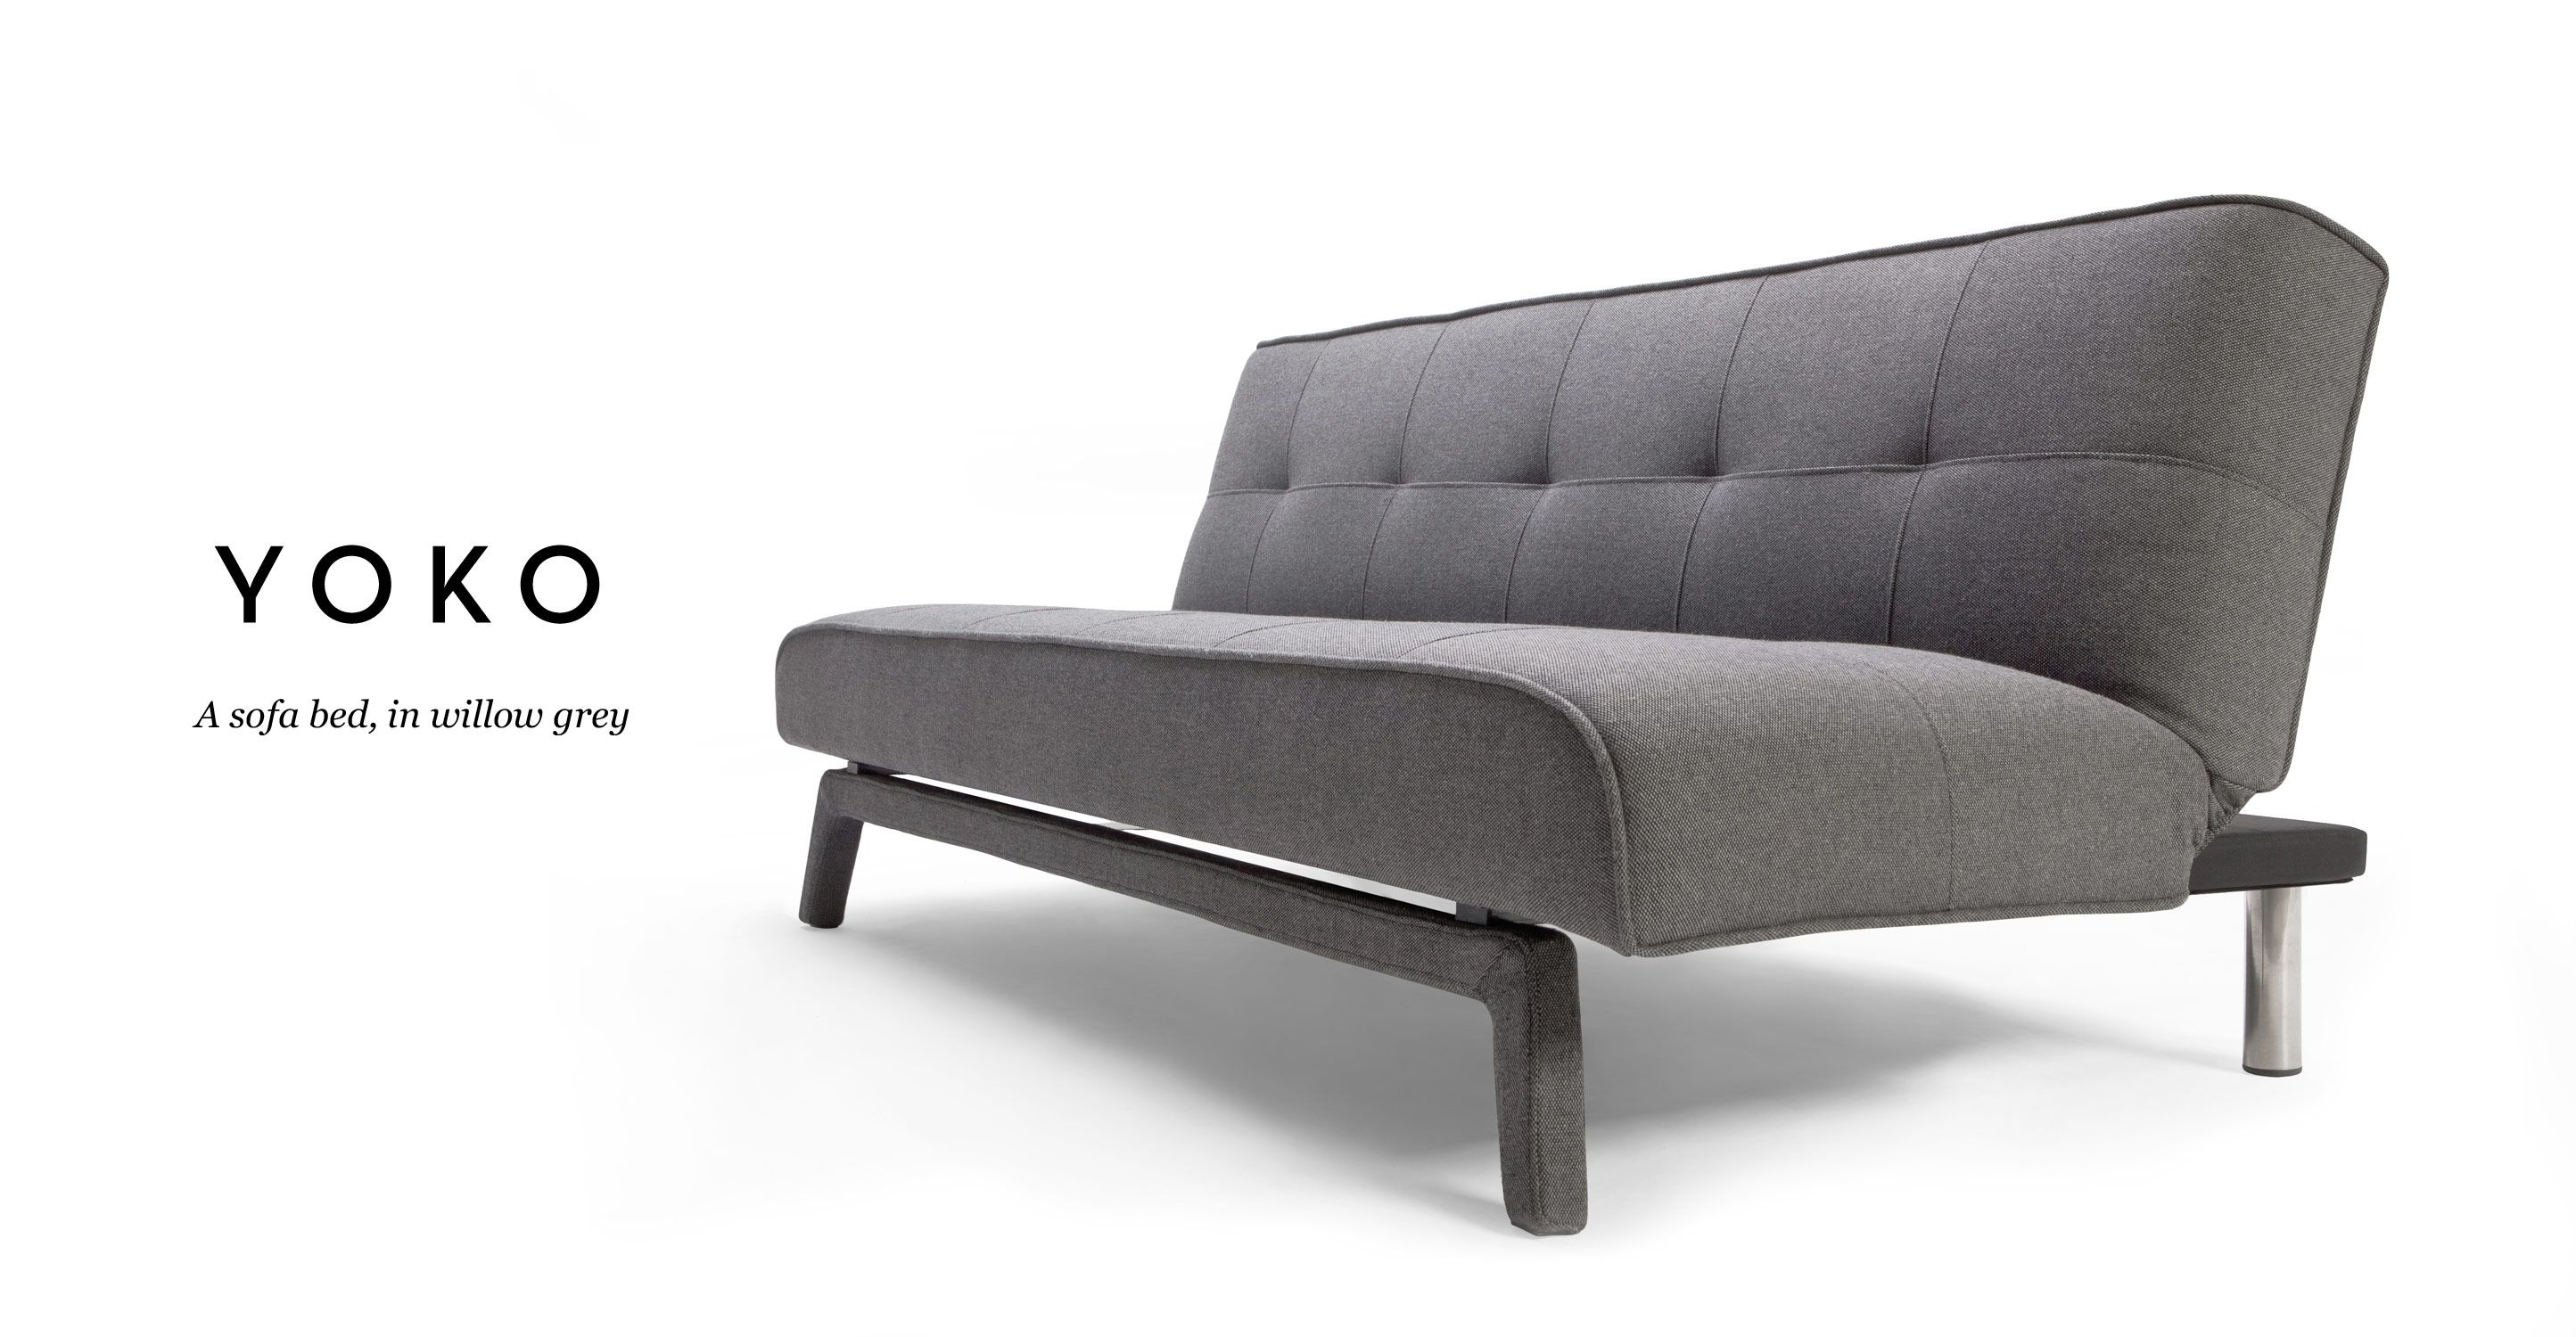 Yoko From Made Com Sold Out Sofas For Small Spaces Bed